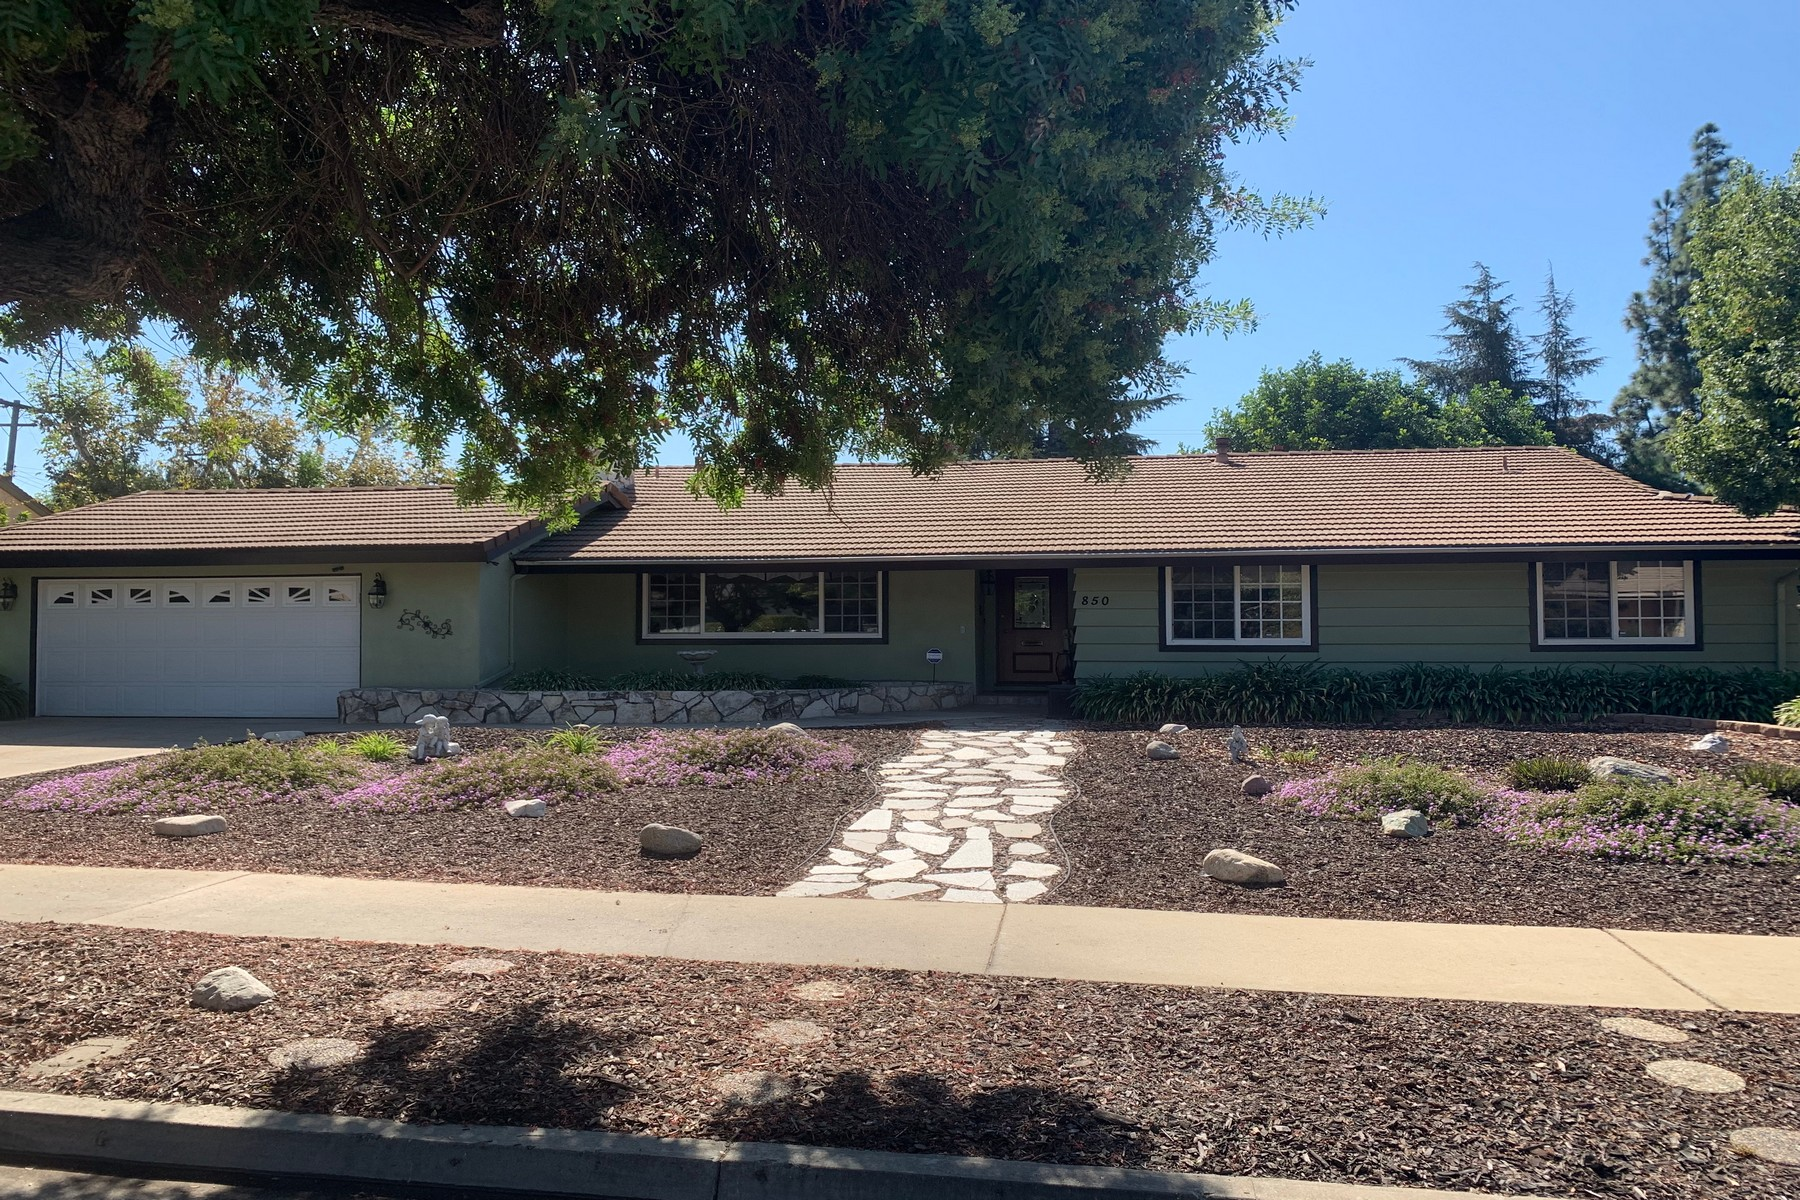 Single Family Homes for Sale at 850 Maryhurst Drive, Claremont, CA 91711 850 Maryhurst Drive Claremont, California 91711 United States